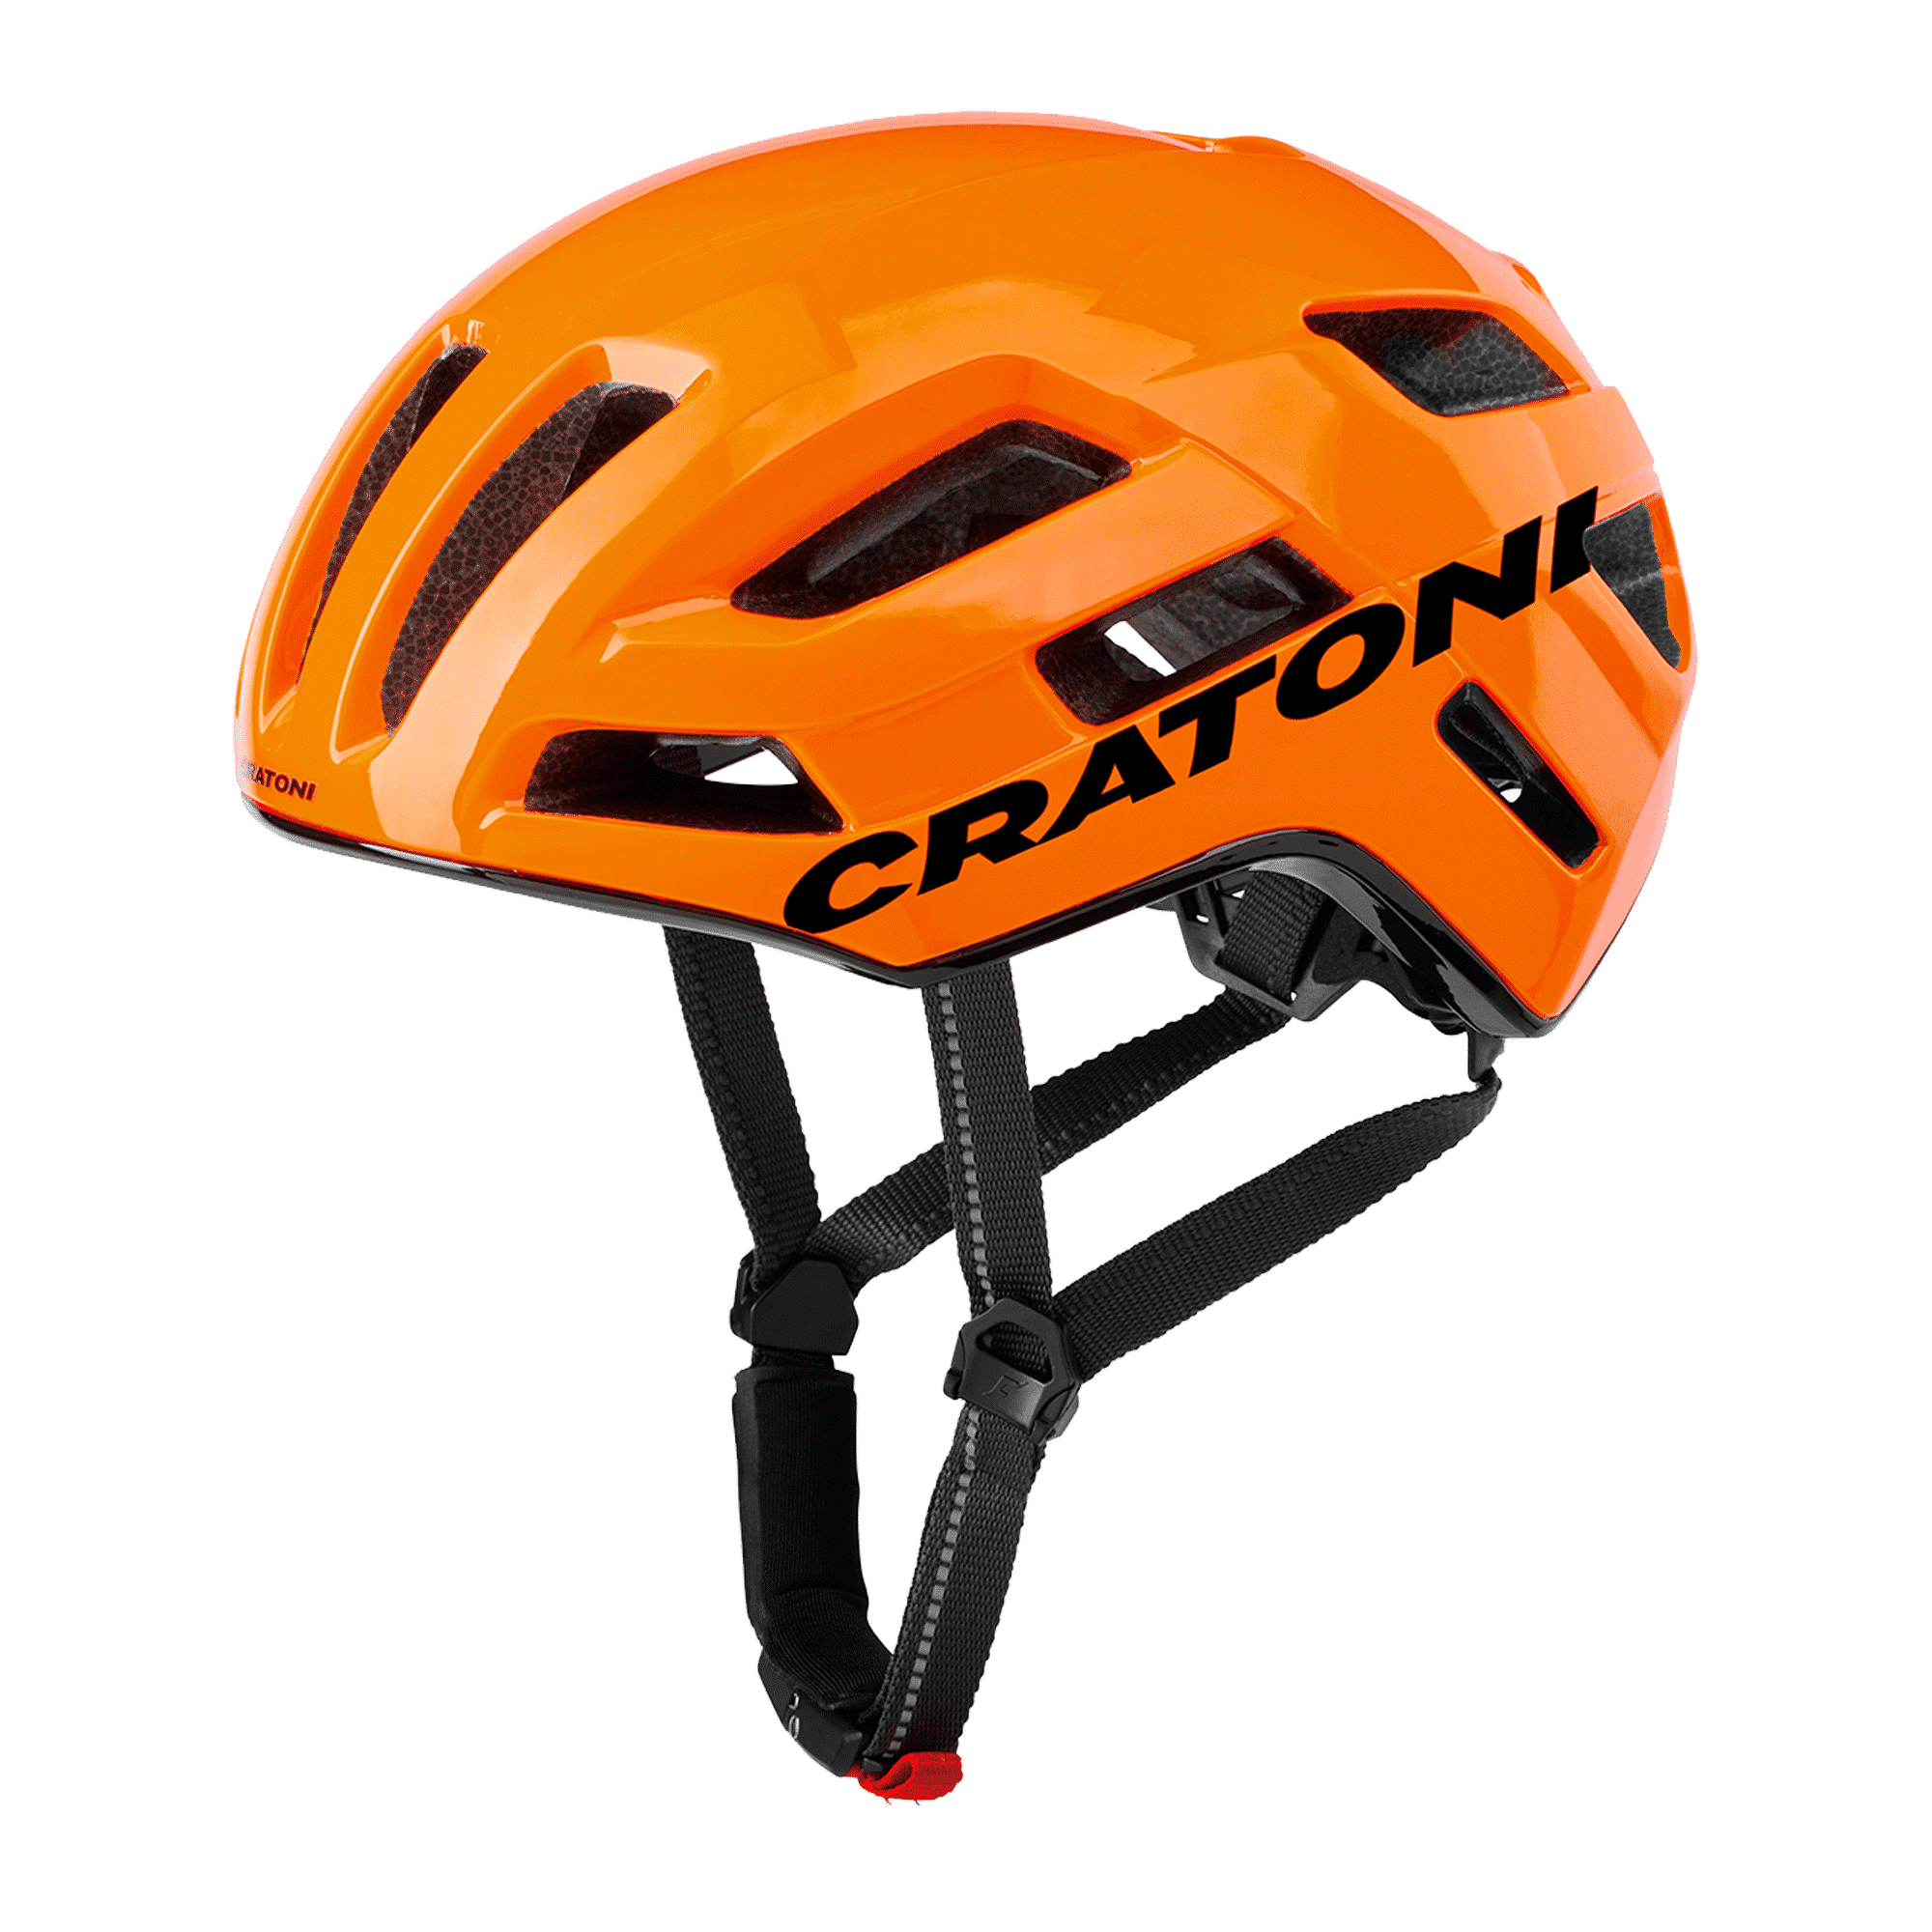 Cratoni Speedfighter neonorange glossy